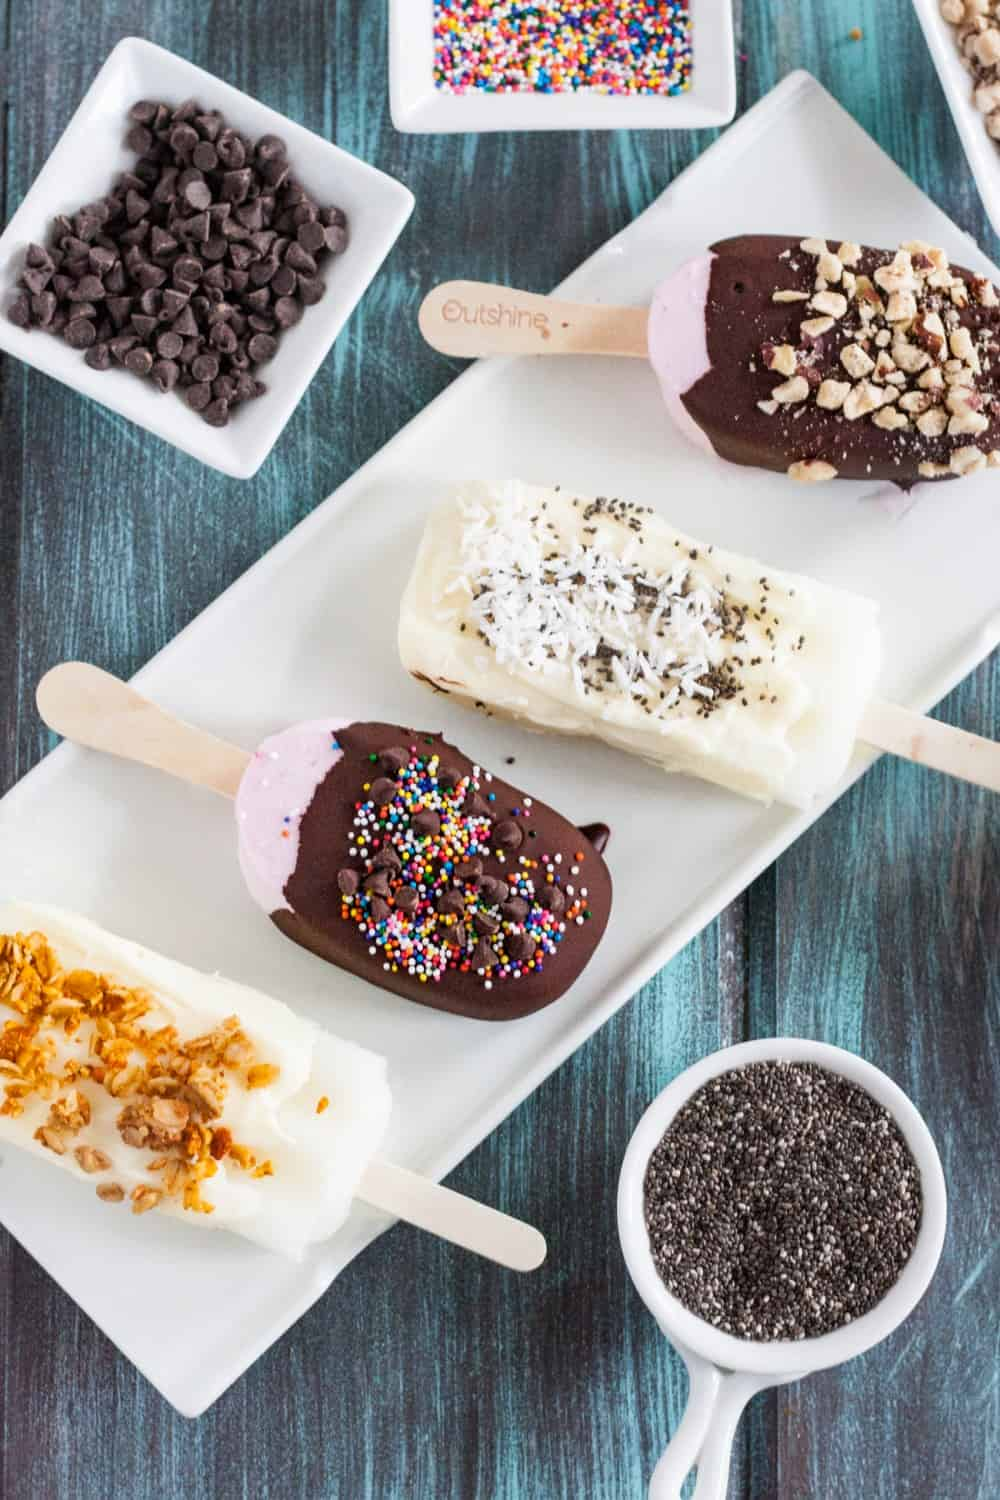 Set up a chocolate dipping station for fruit pops at your next summer party! It's an easy and interactive dessert your guests will love! #ad #SnackBrighter